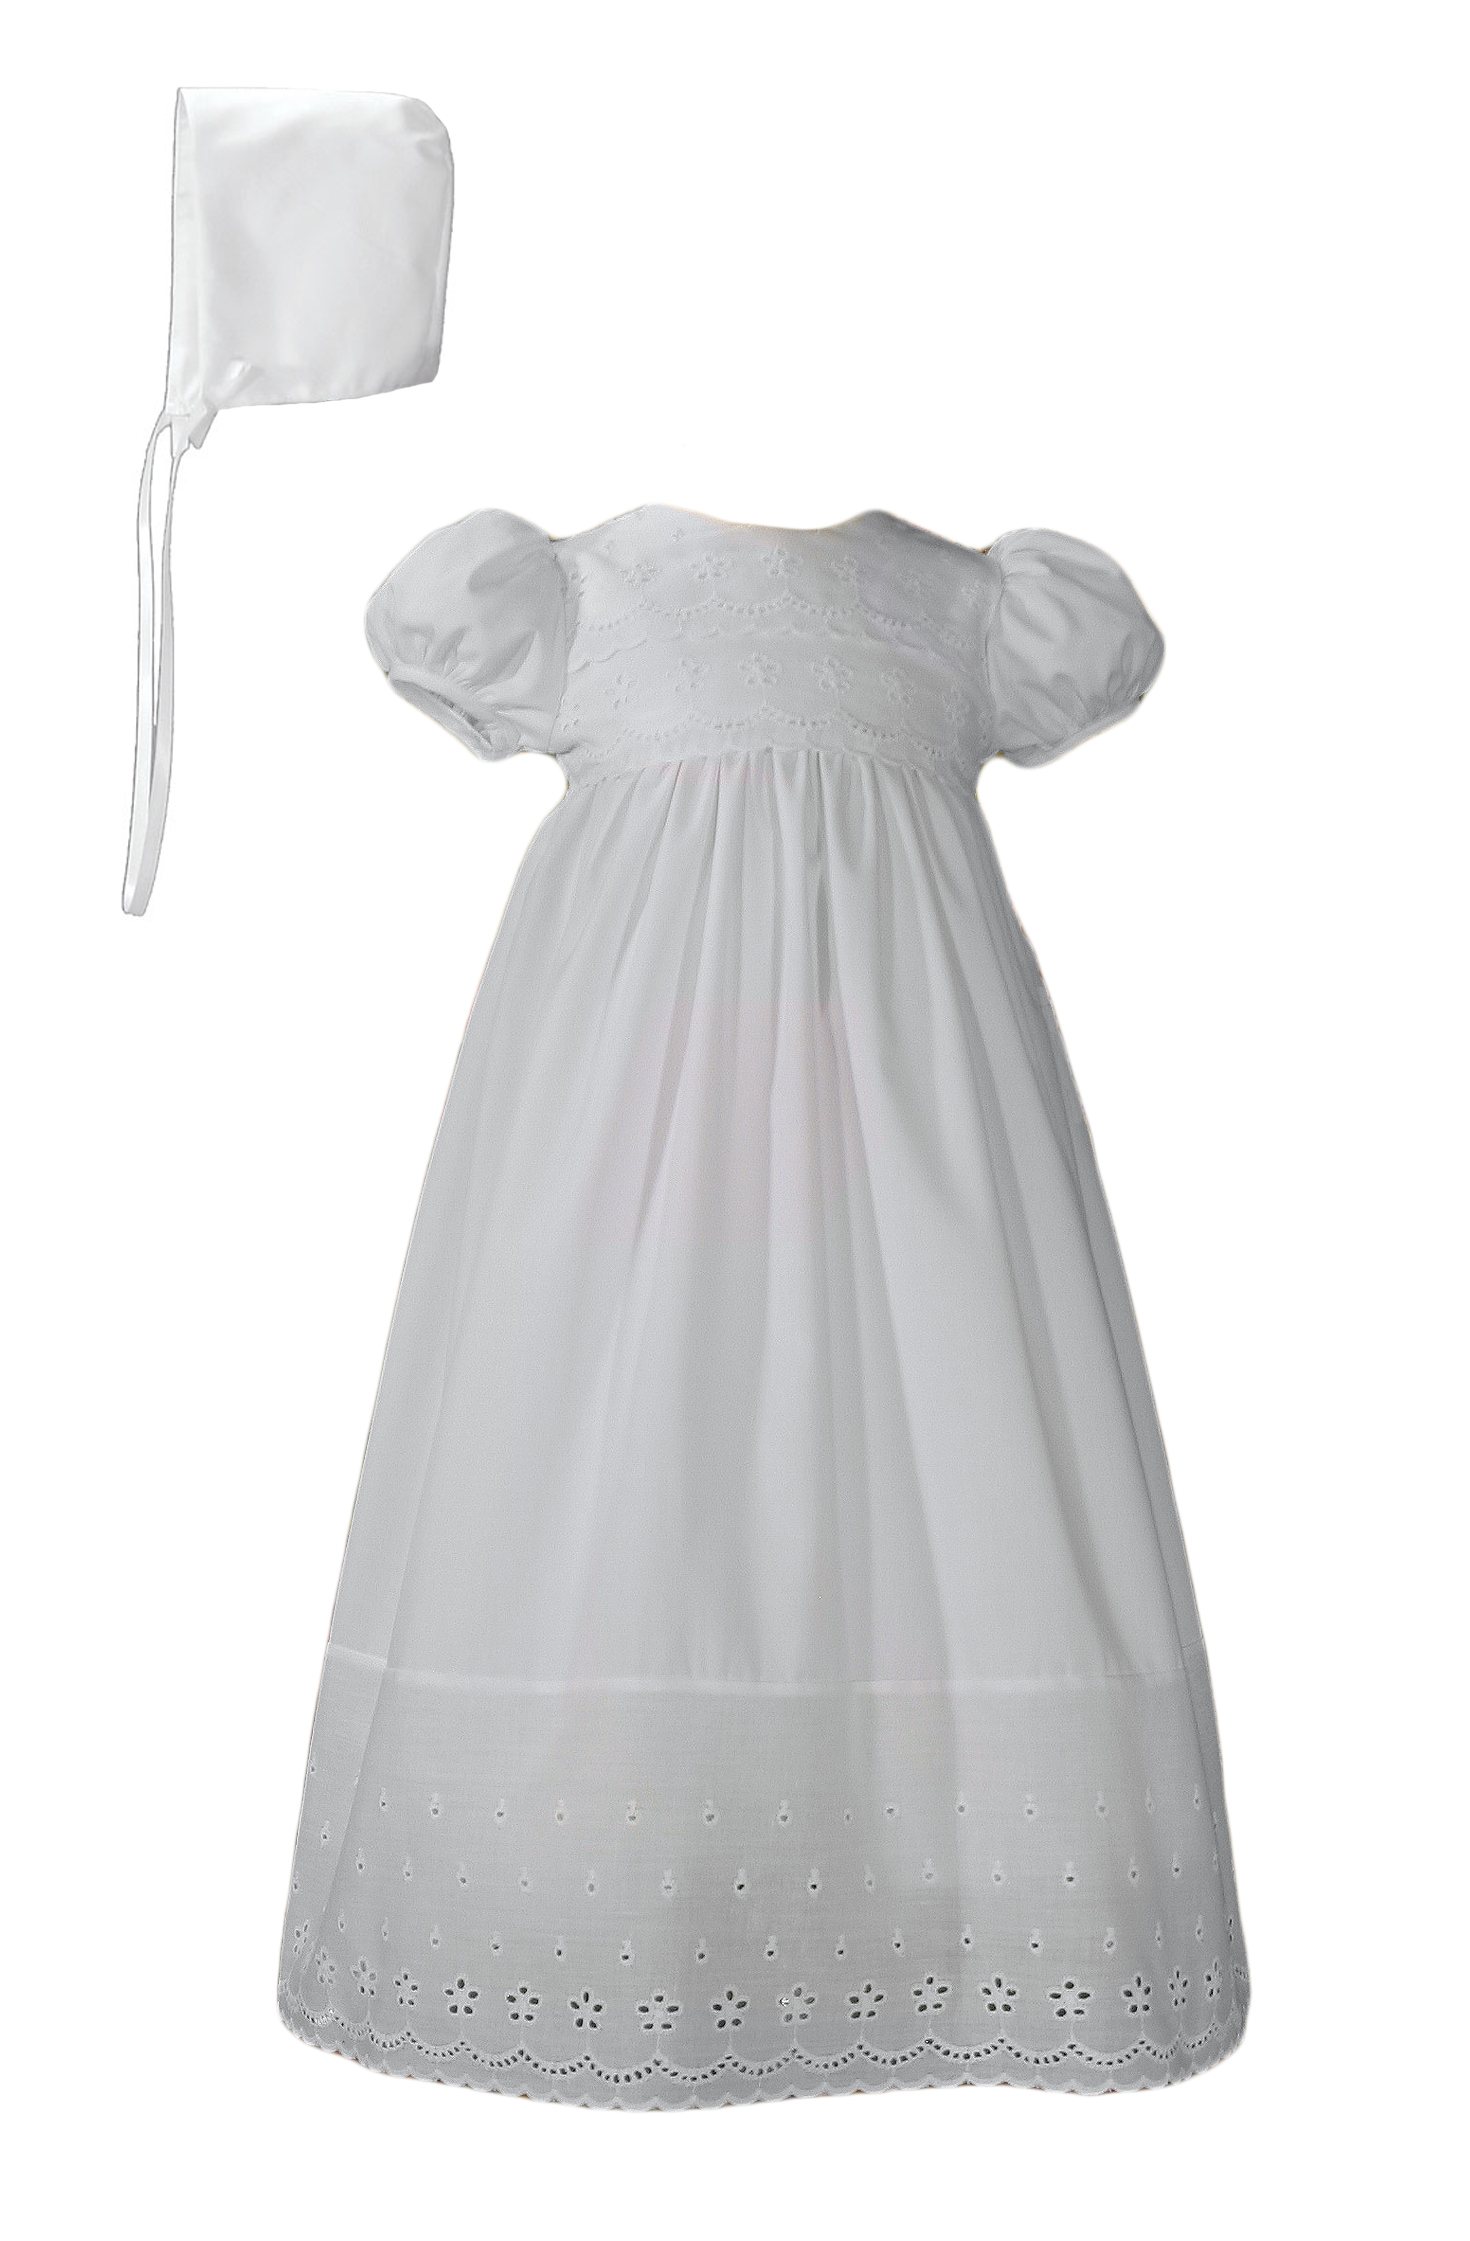 Girls White Cotton Christening Baptism Gown with Lace Border and ...